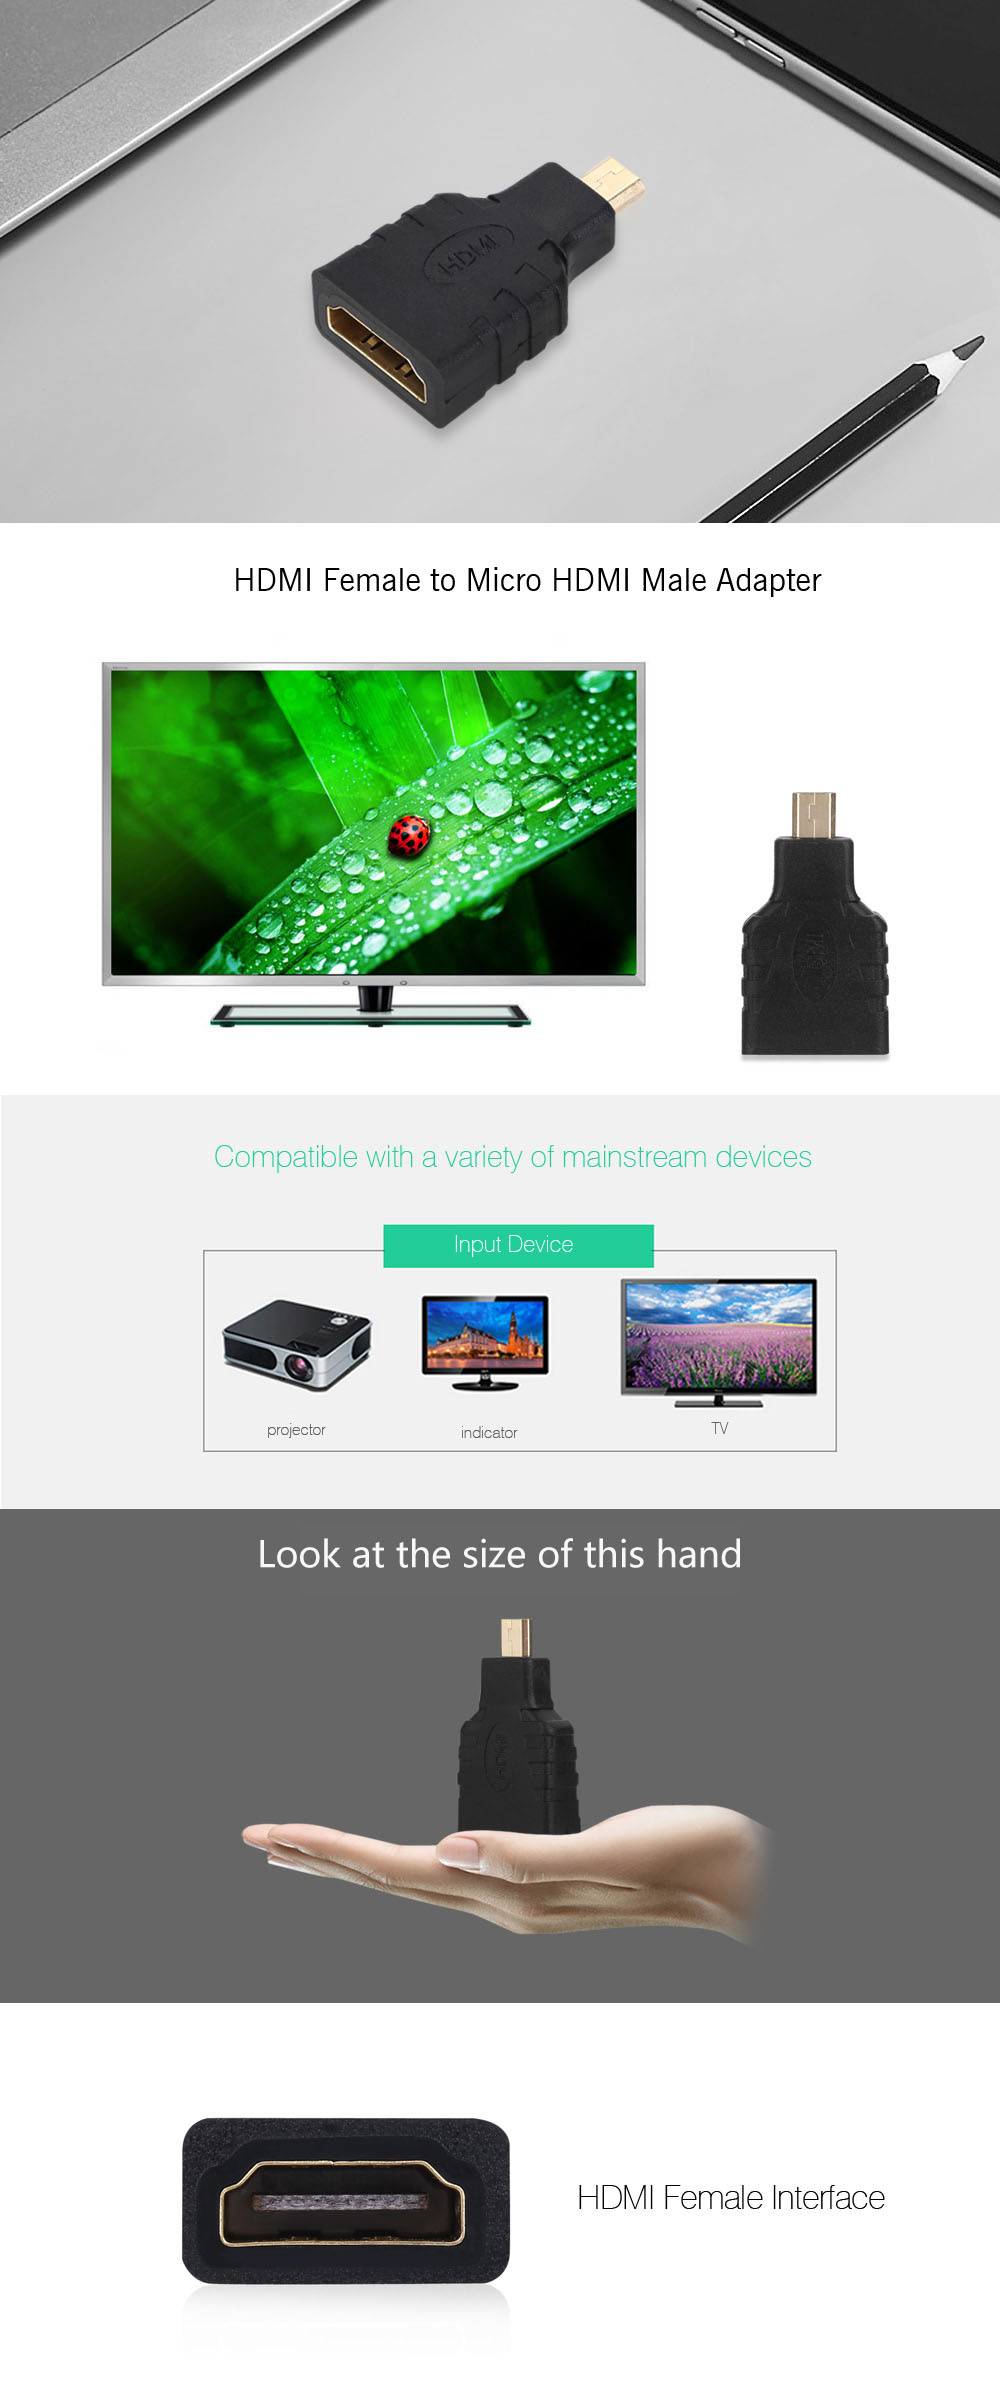 Gold-plated HDMI Female to Micro HDMI Male Adapter